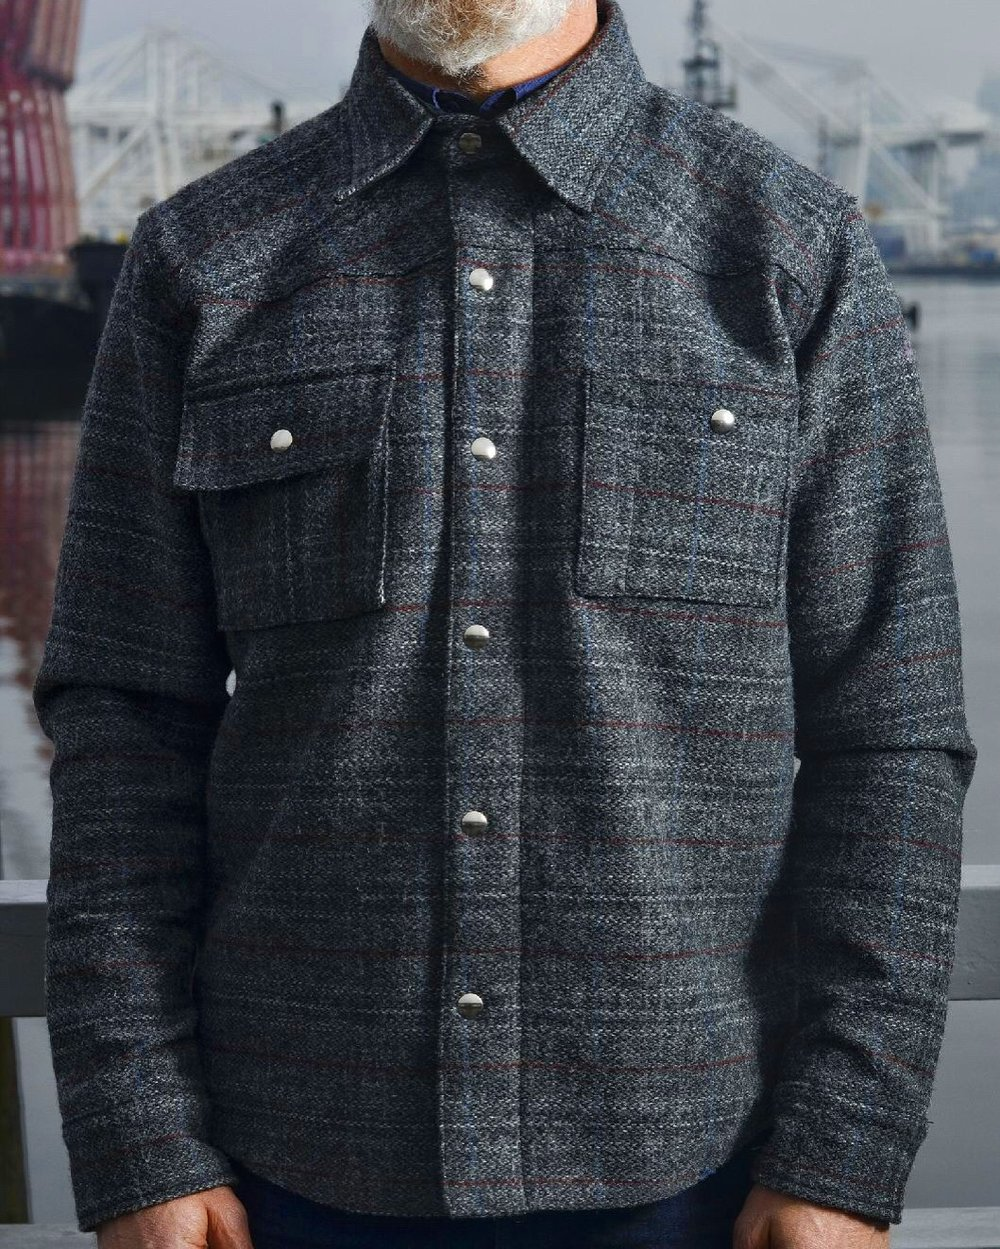 Black Bear Brand Grey Check Plaid (Harris Tweed)https://blackbearunion.com/black-bear-brand-factory-store/?category=Jackets